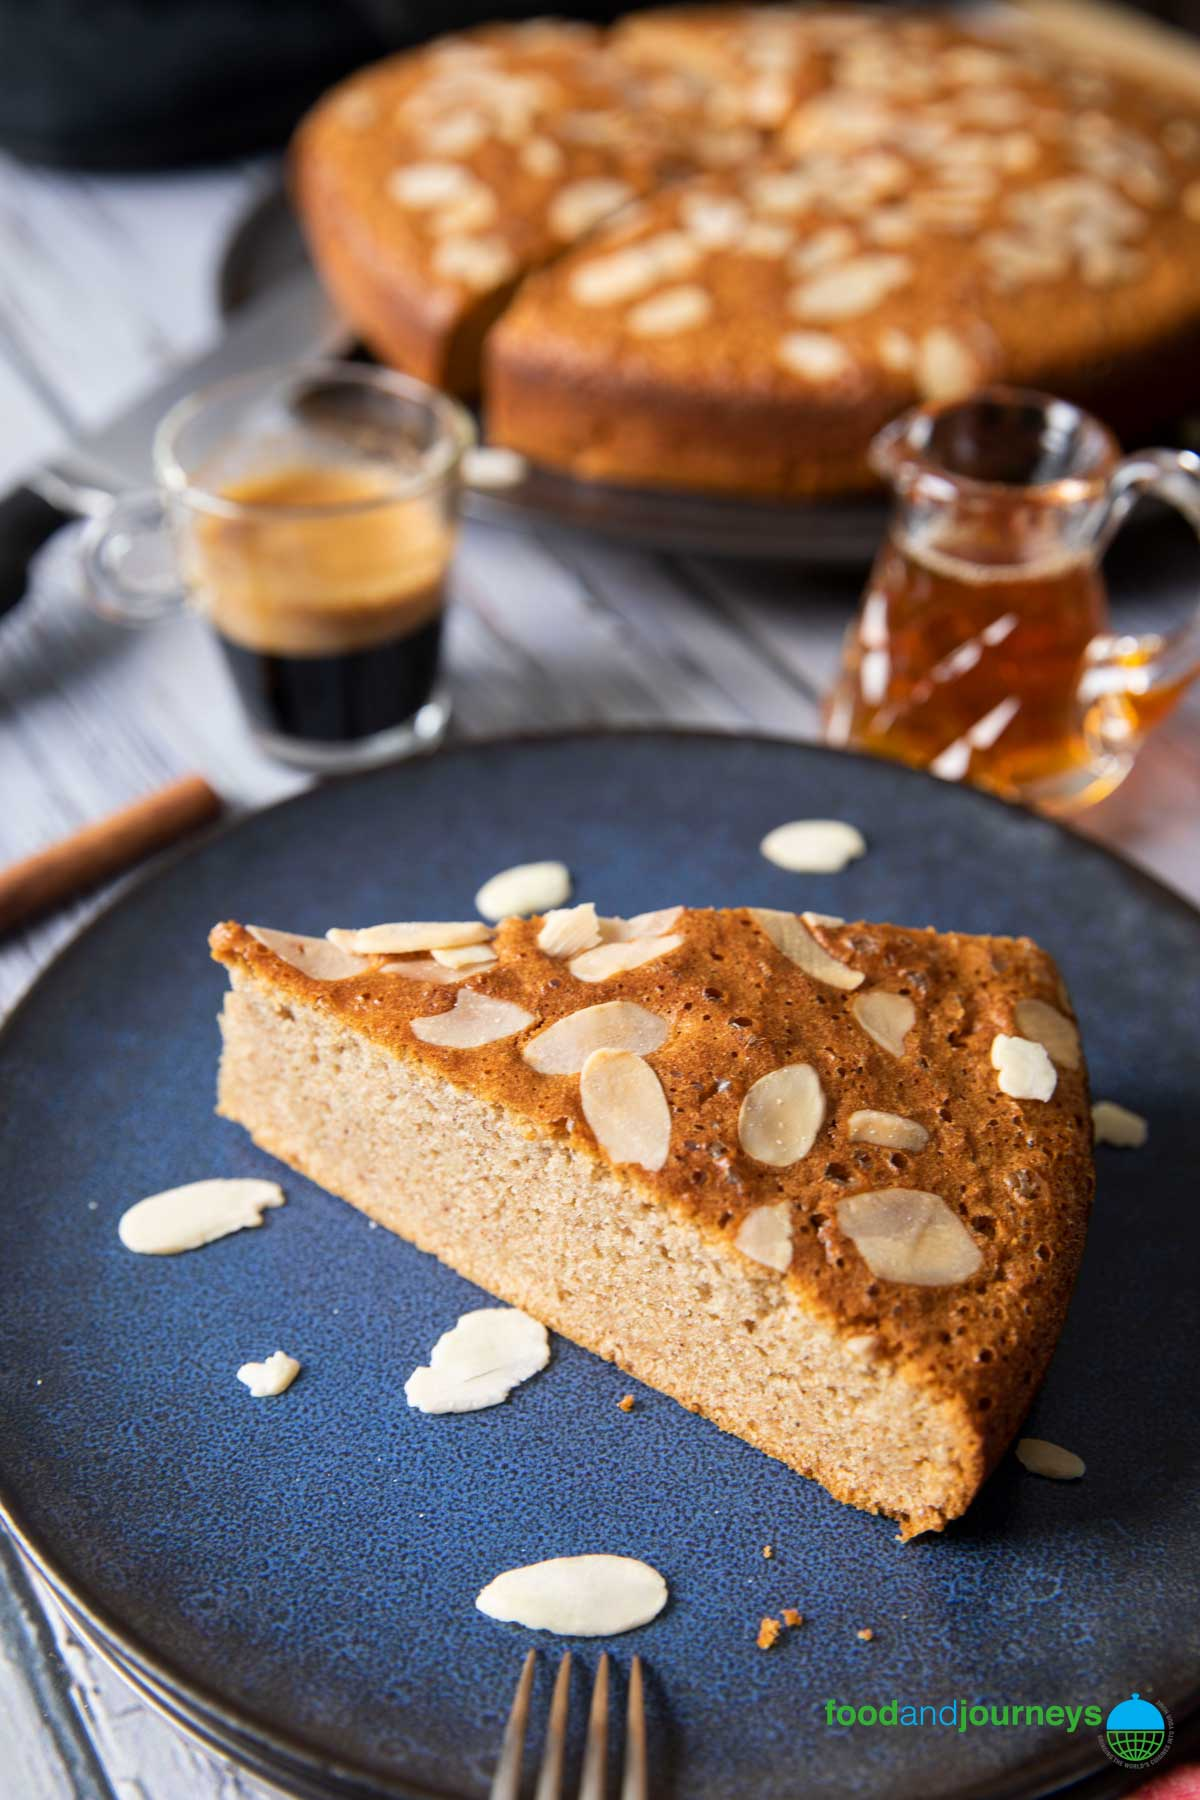 An angled shot of a slice of Portuguese Honey Cake, served with a shot of espresso and sprinkled with more sliced almonds.